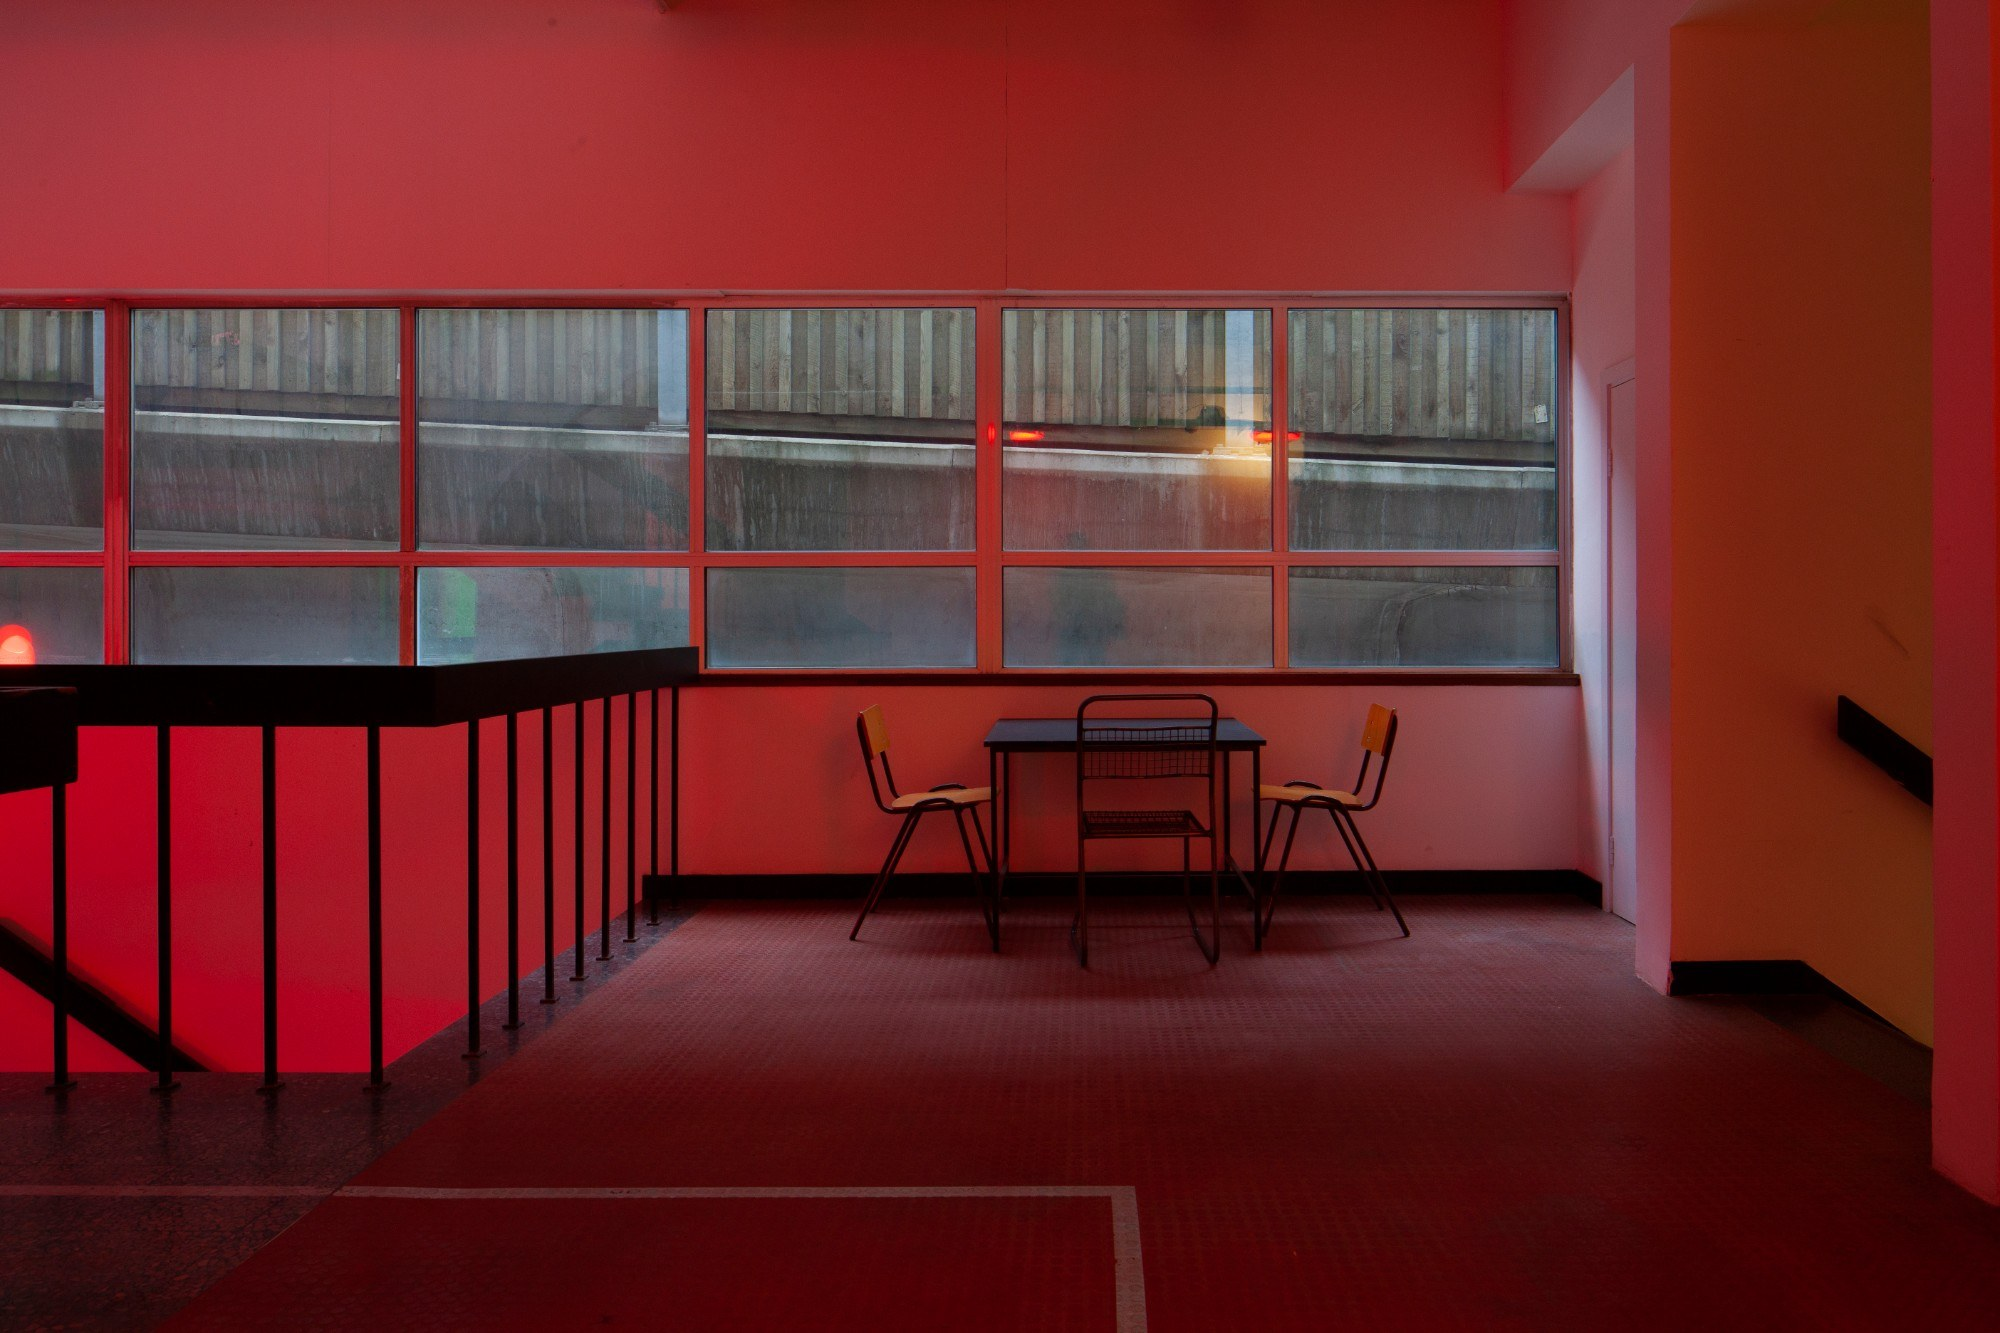 Stairwell lit with red lighting